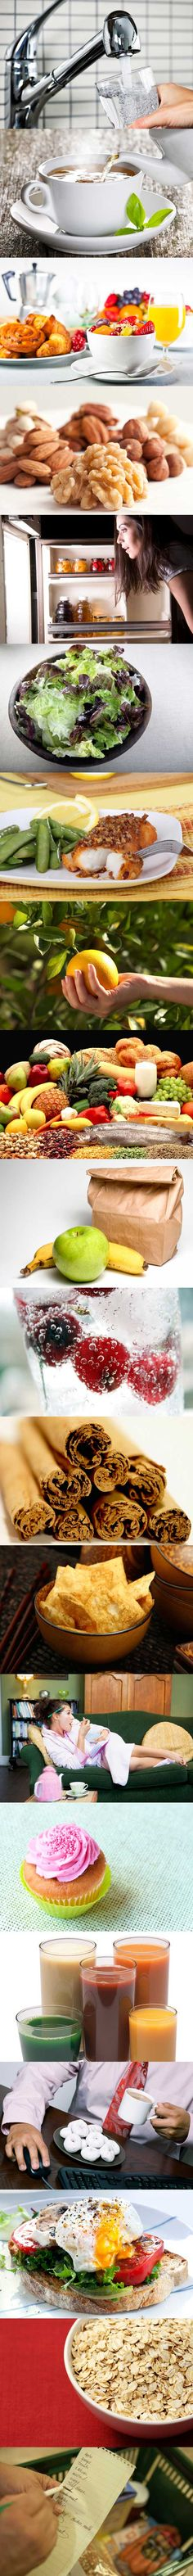 20 Easy Ways to Improve Your Eating Habits